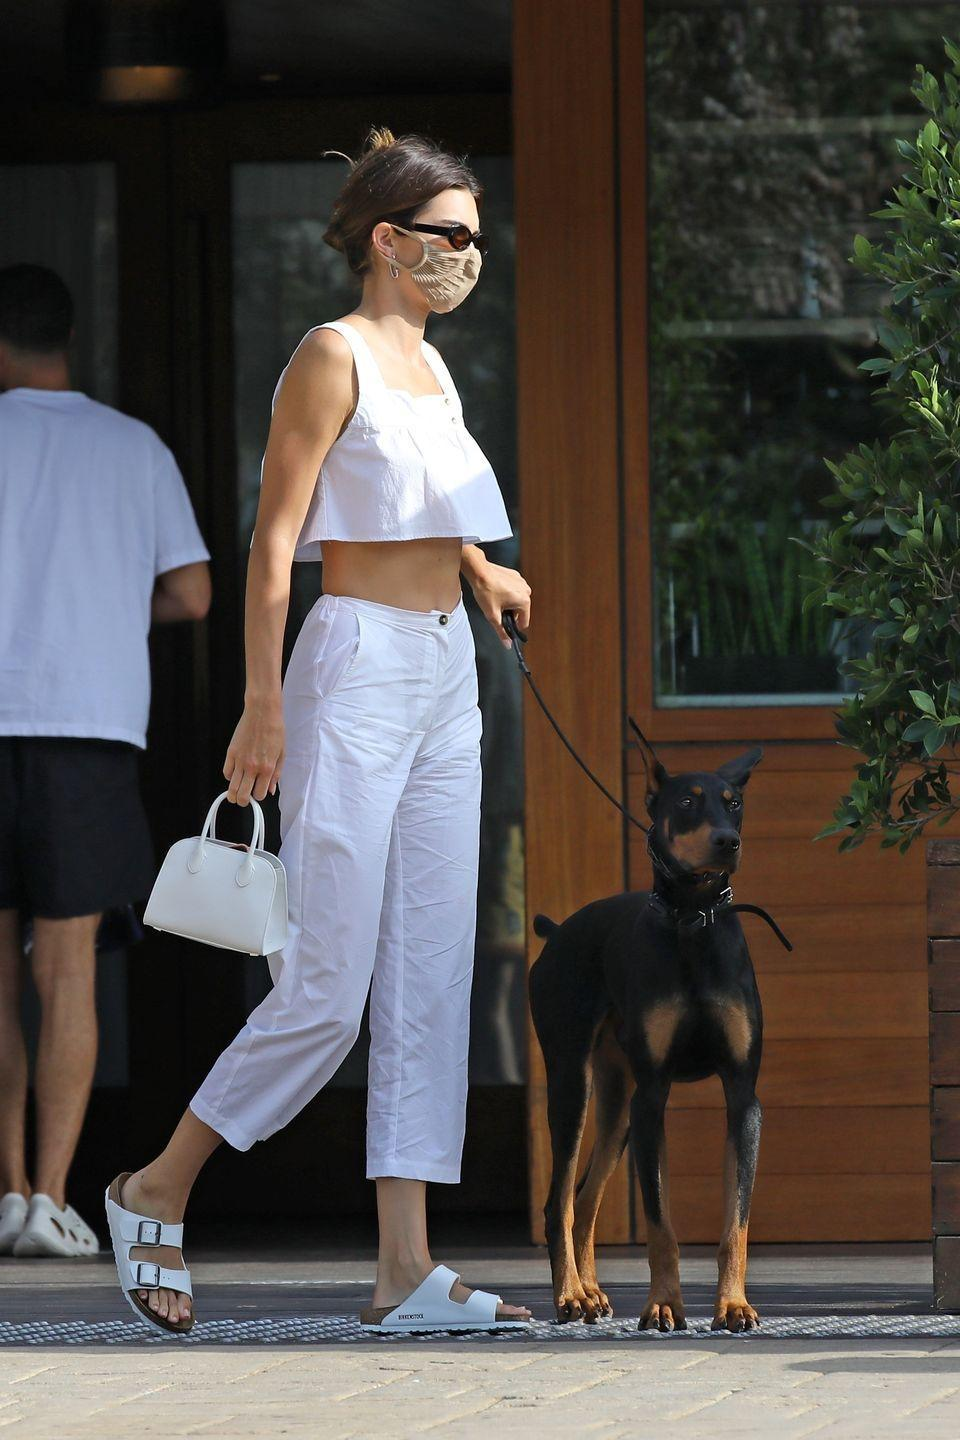 <p>The model was spotted with her dobermann Six, heading for dinner in Malibu with friends on August 2nd. Wearing a mask, and an all-white outfit in the form of linen trousers, a peplum crop top and Birkenstocks, the model looked both chic and Covid-safe.</p>